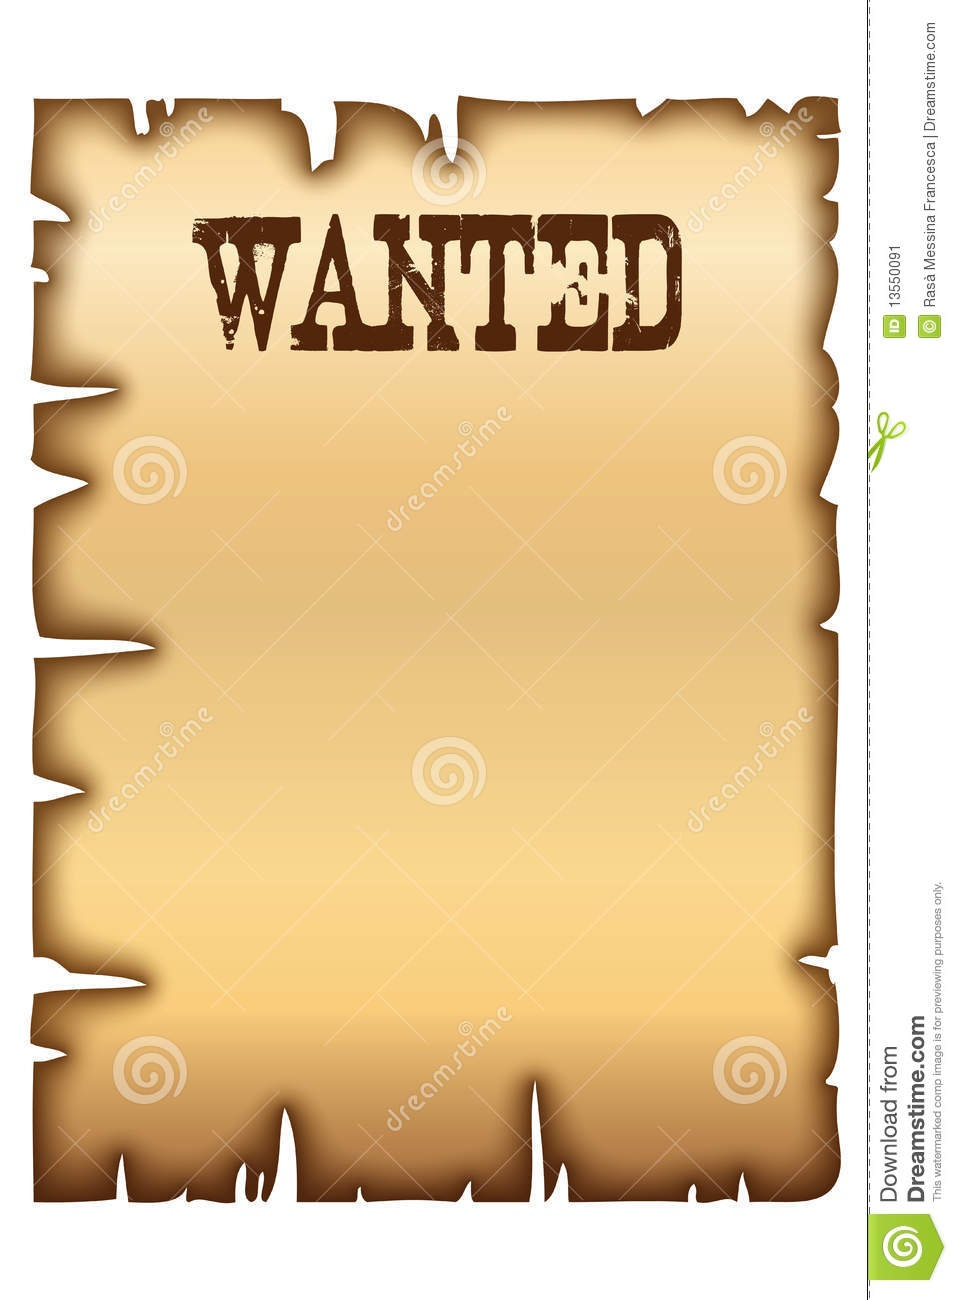 Wanted Poster Stock Vector. Illustration Of Edge, Antique - 13550091 - Free Printable Wanted Poster Invitations